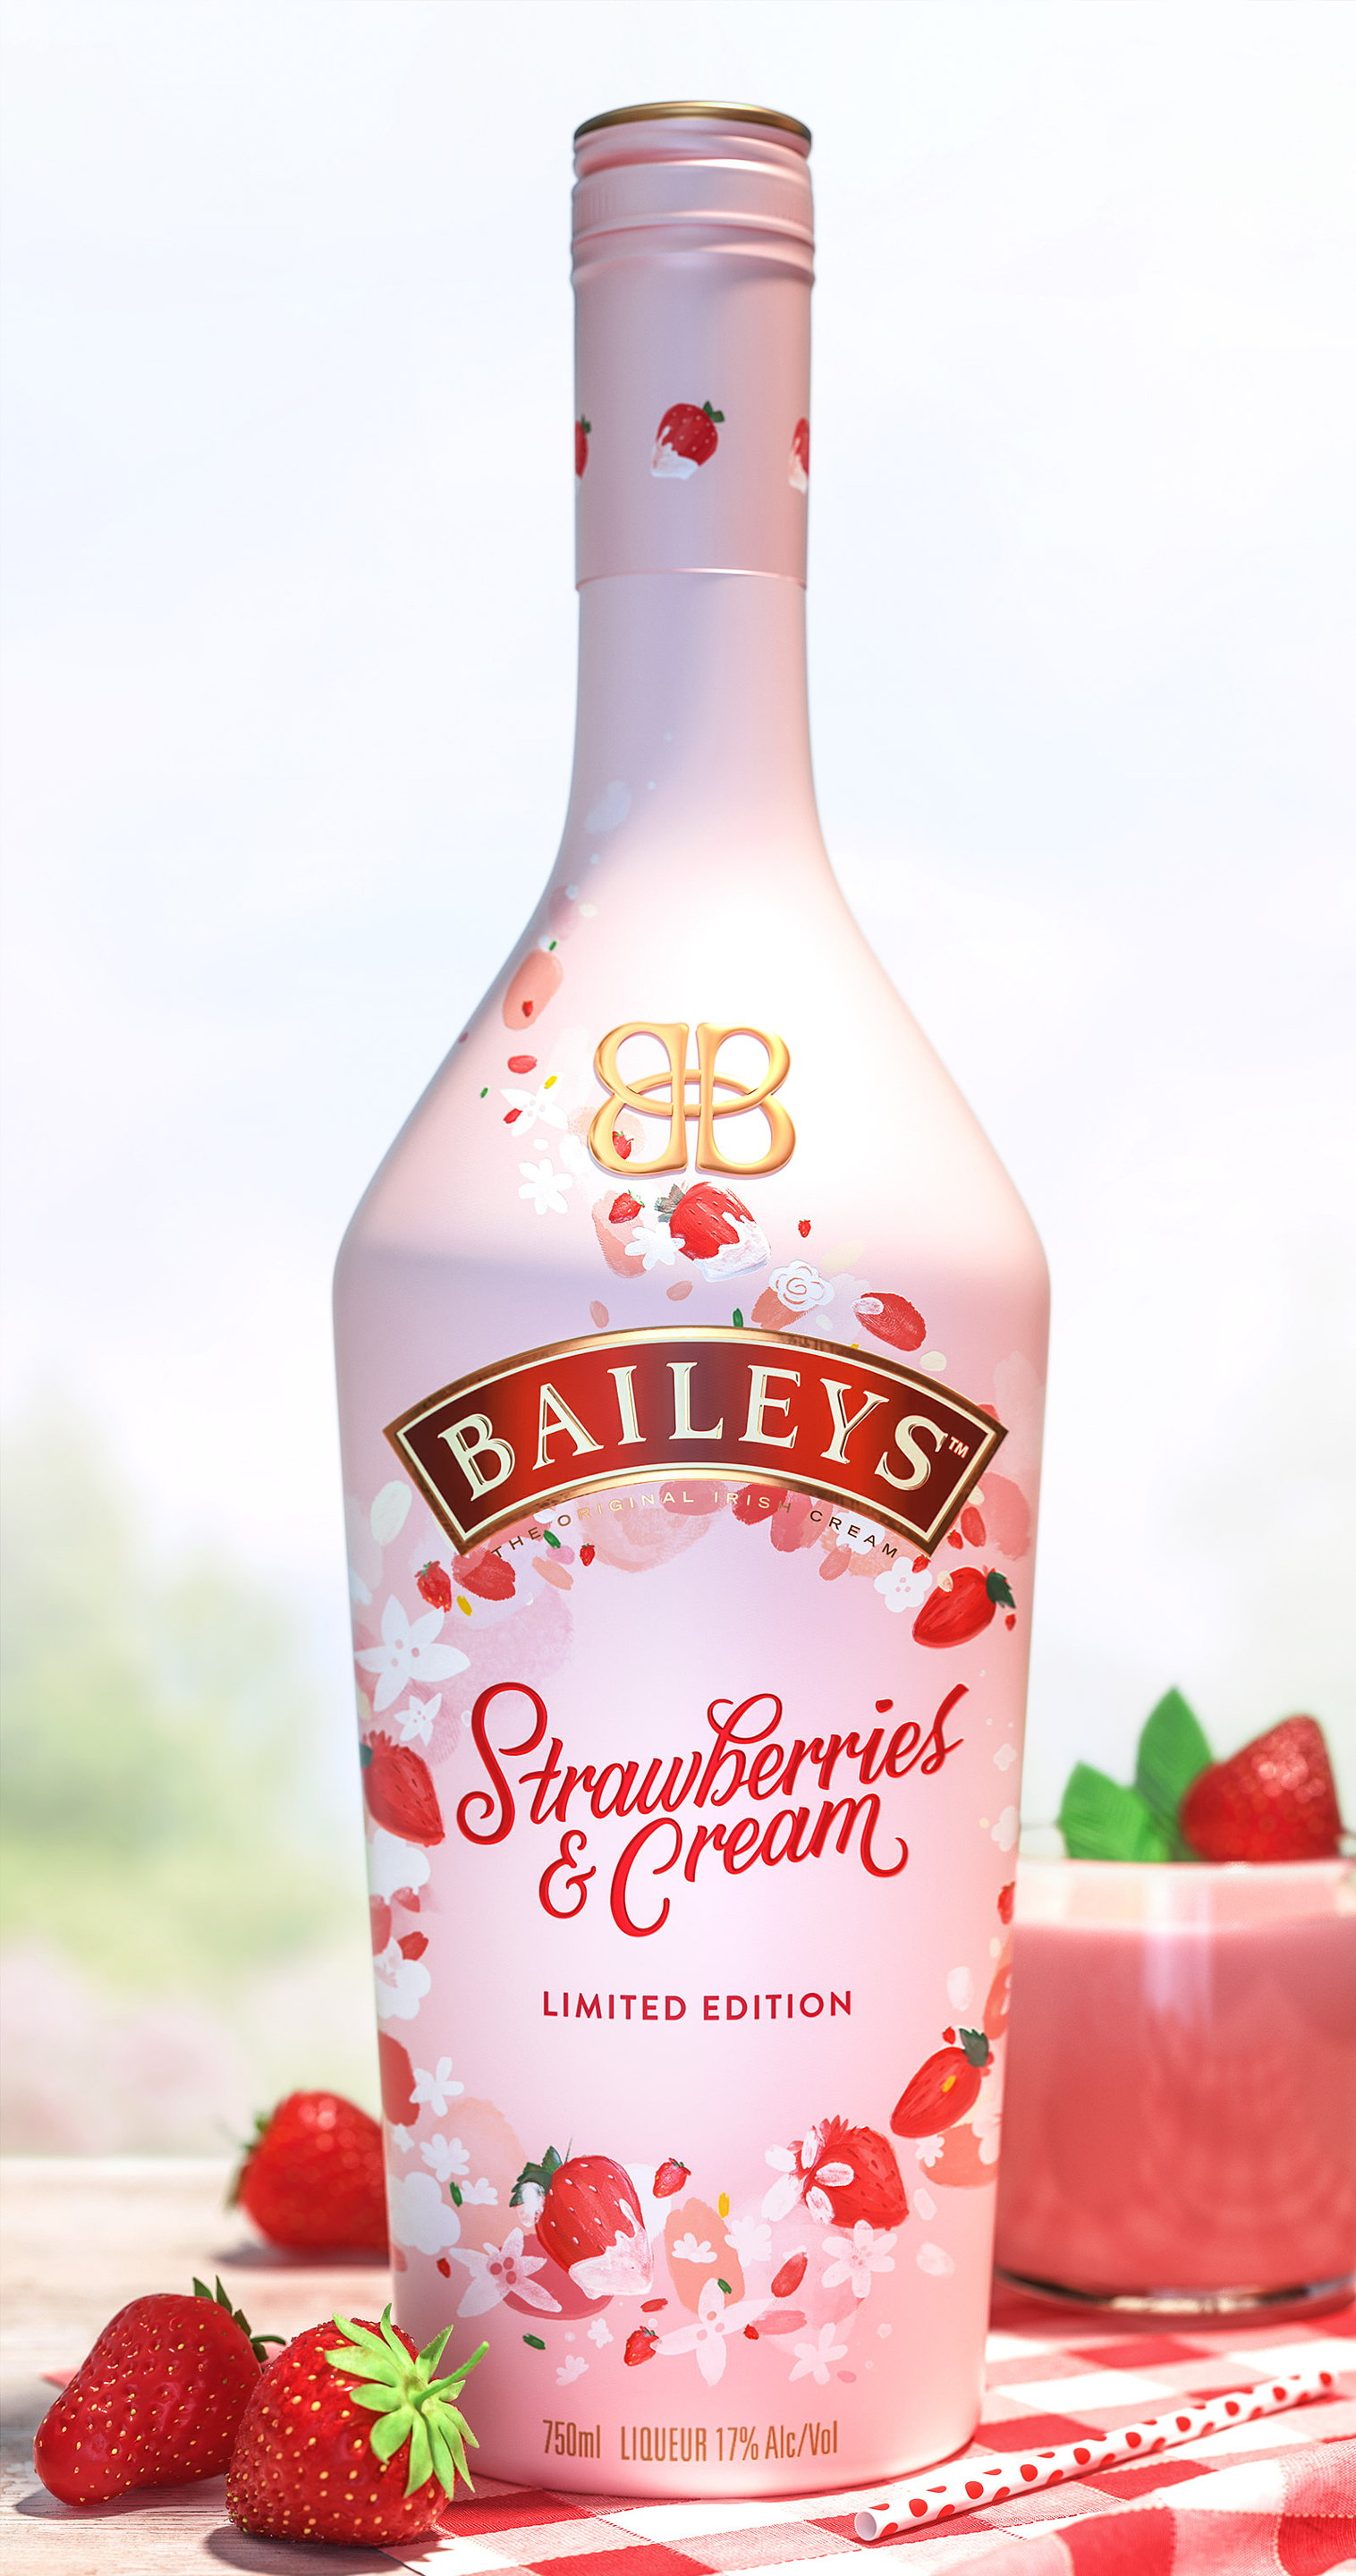 Baileys Limited Edition Strawberries and Cream